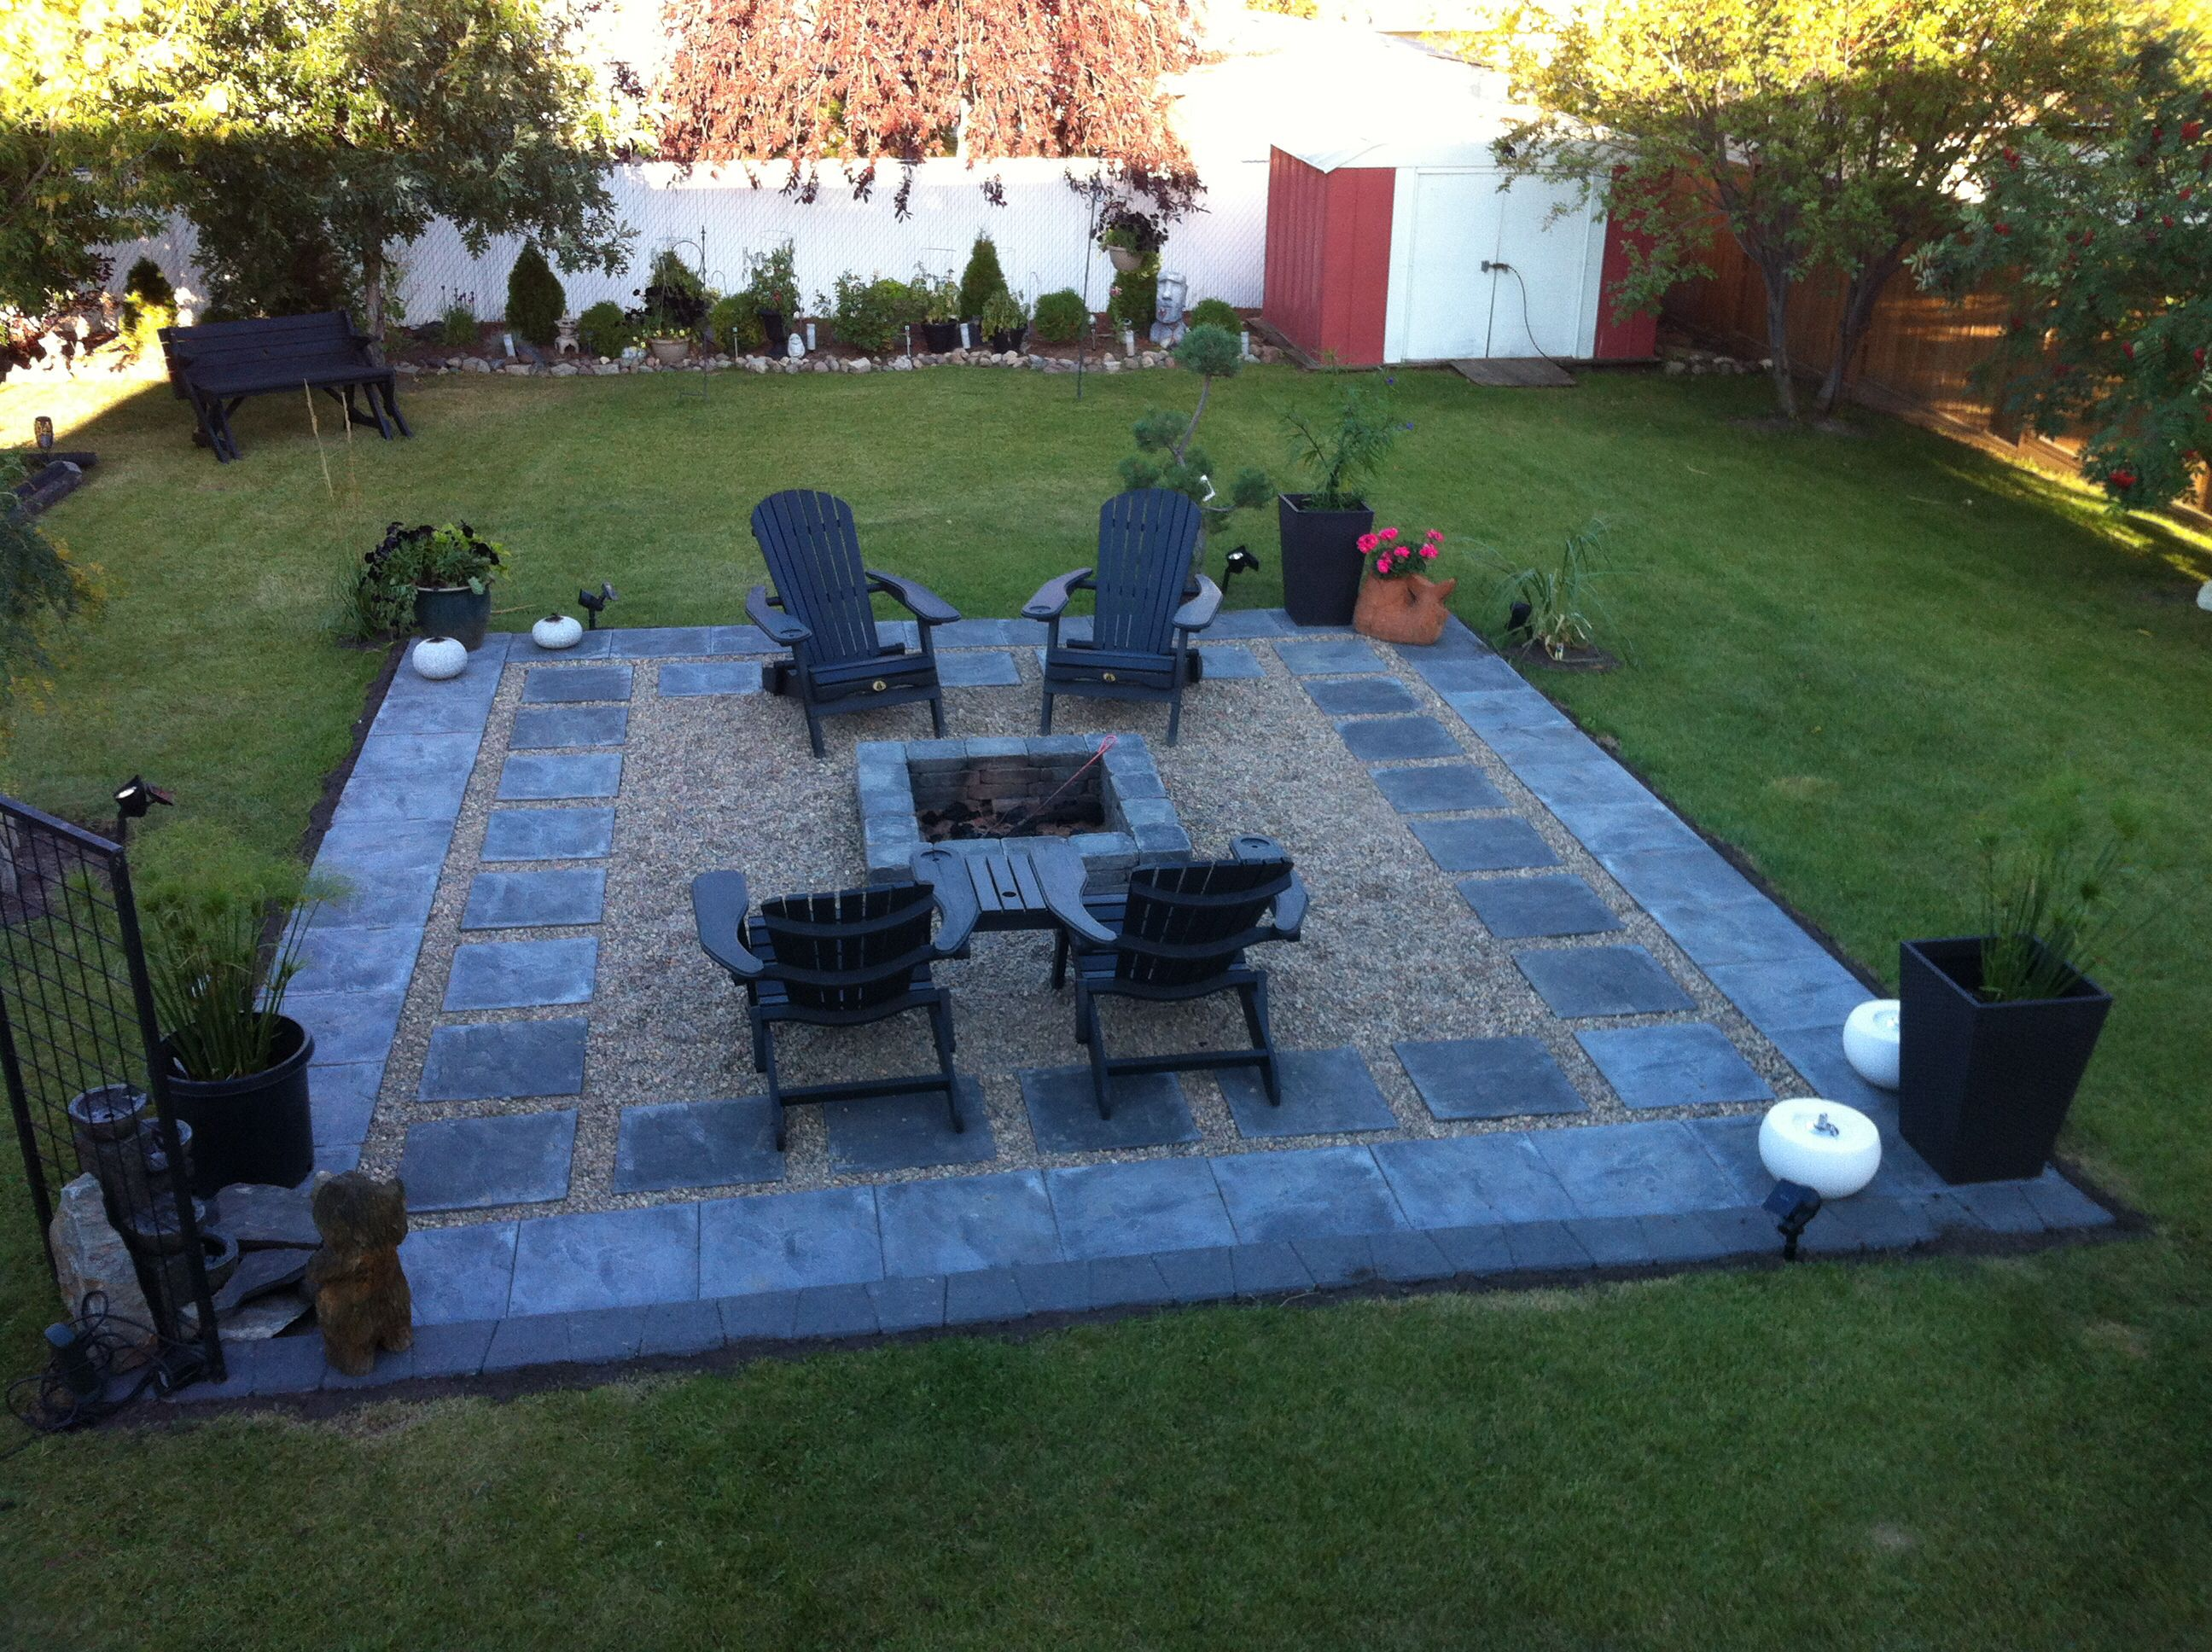 Garden Furniture On Gravel charcoal slate patio stones with pea stone gravel. a square fire